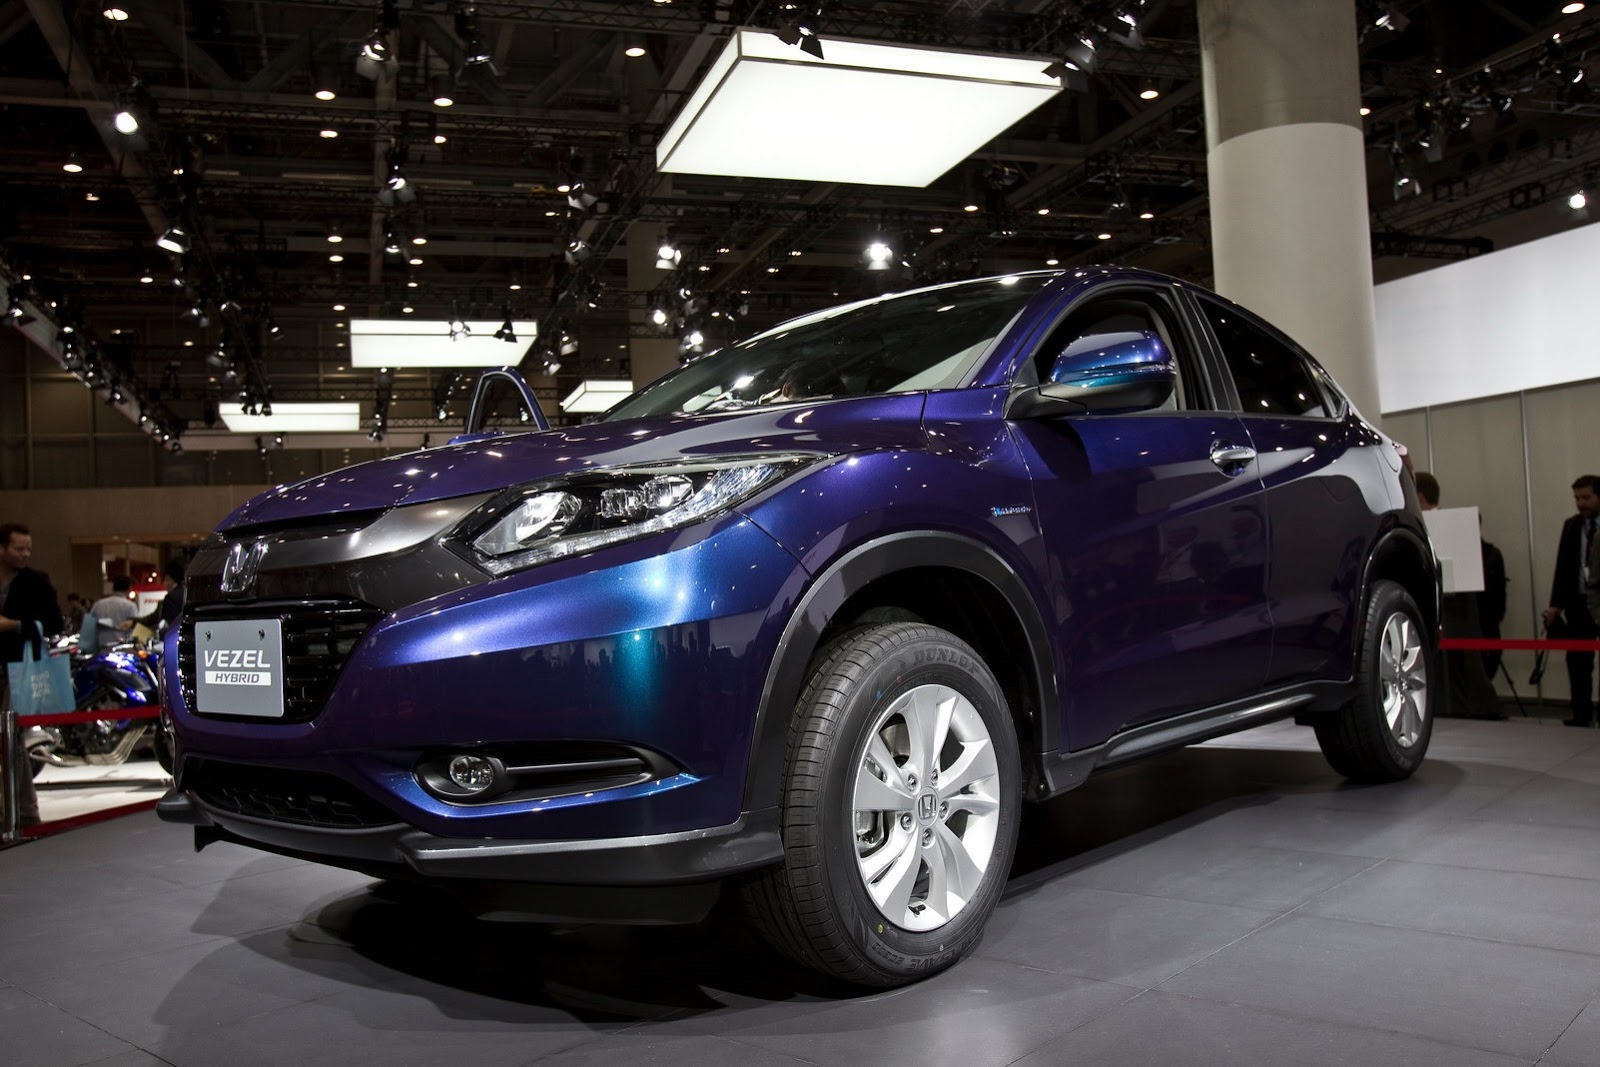 honda vezel aka hr v crossover to unveil at paris motor show. Black Bedroom Furniture Sets. Home Design Ideas